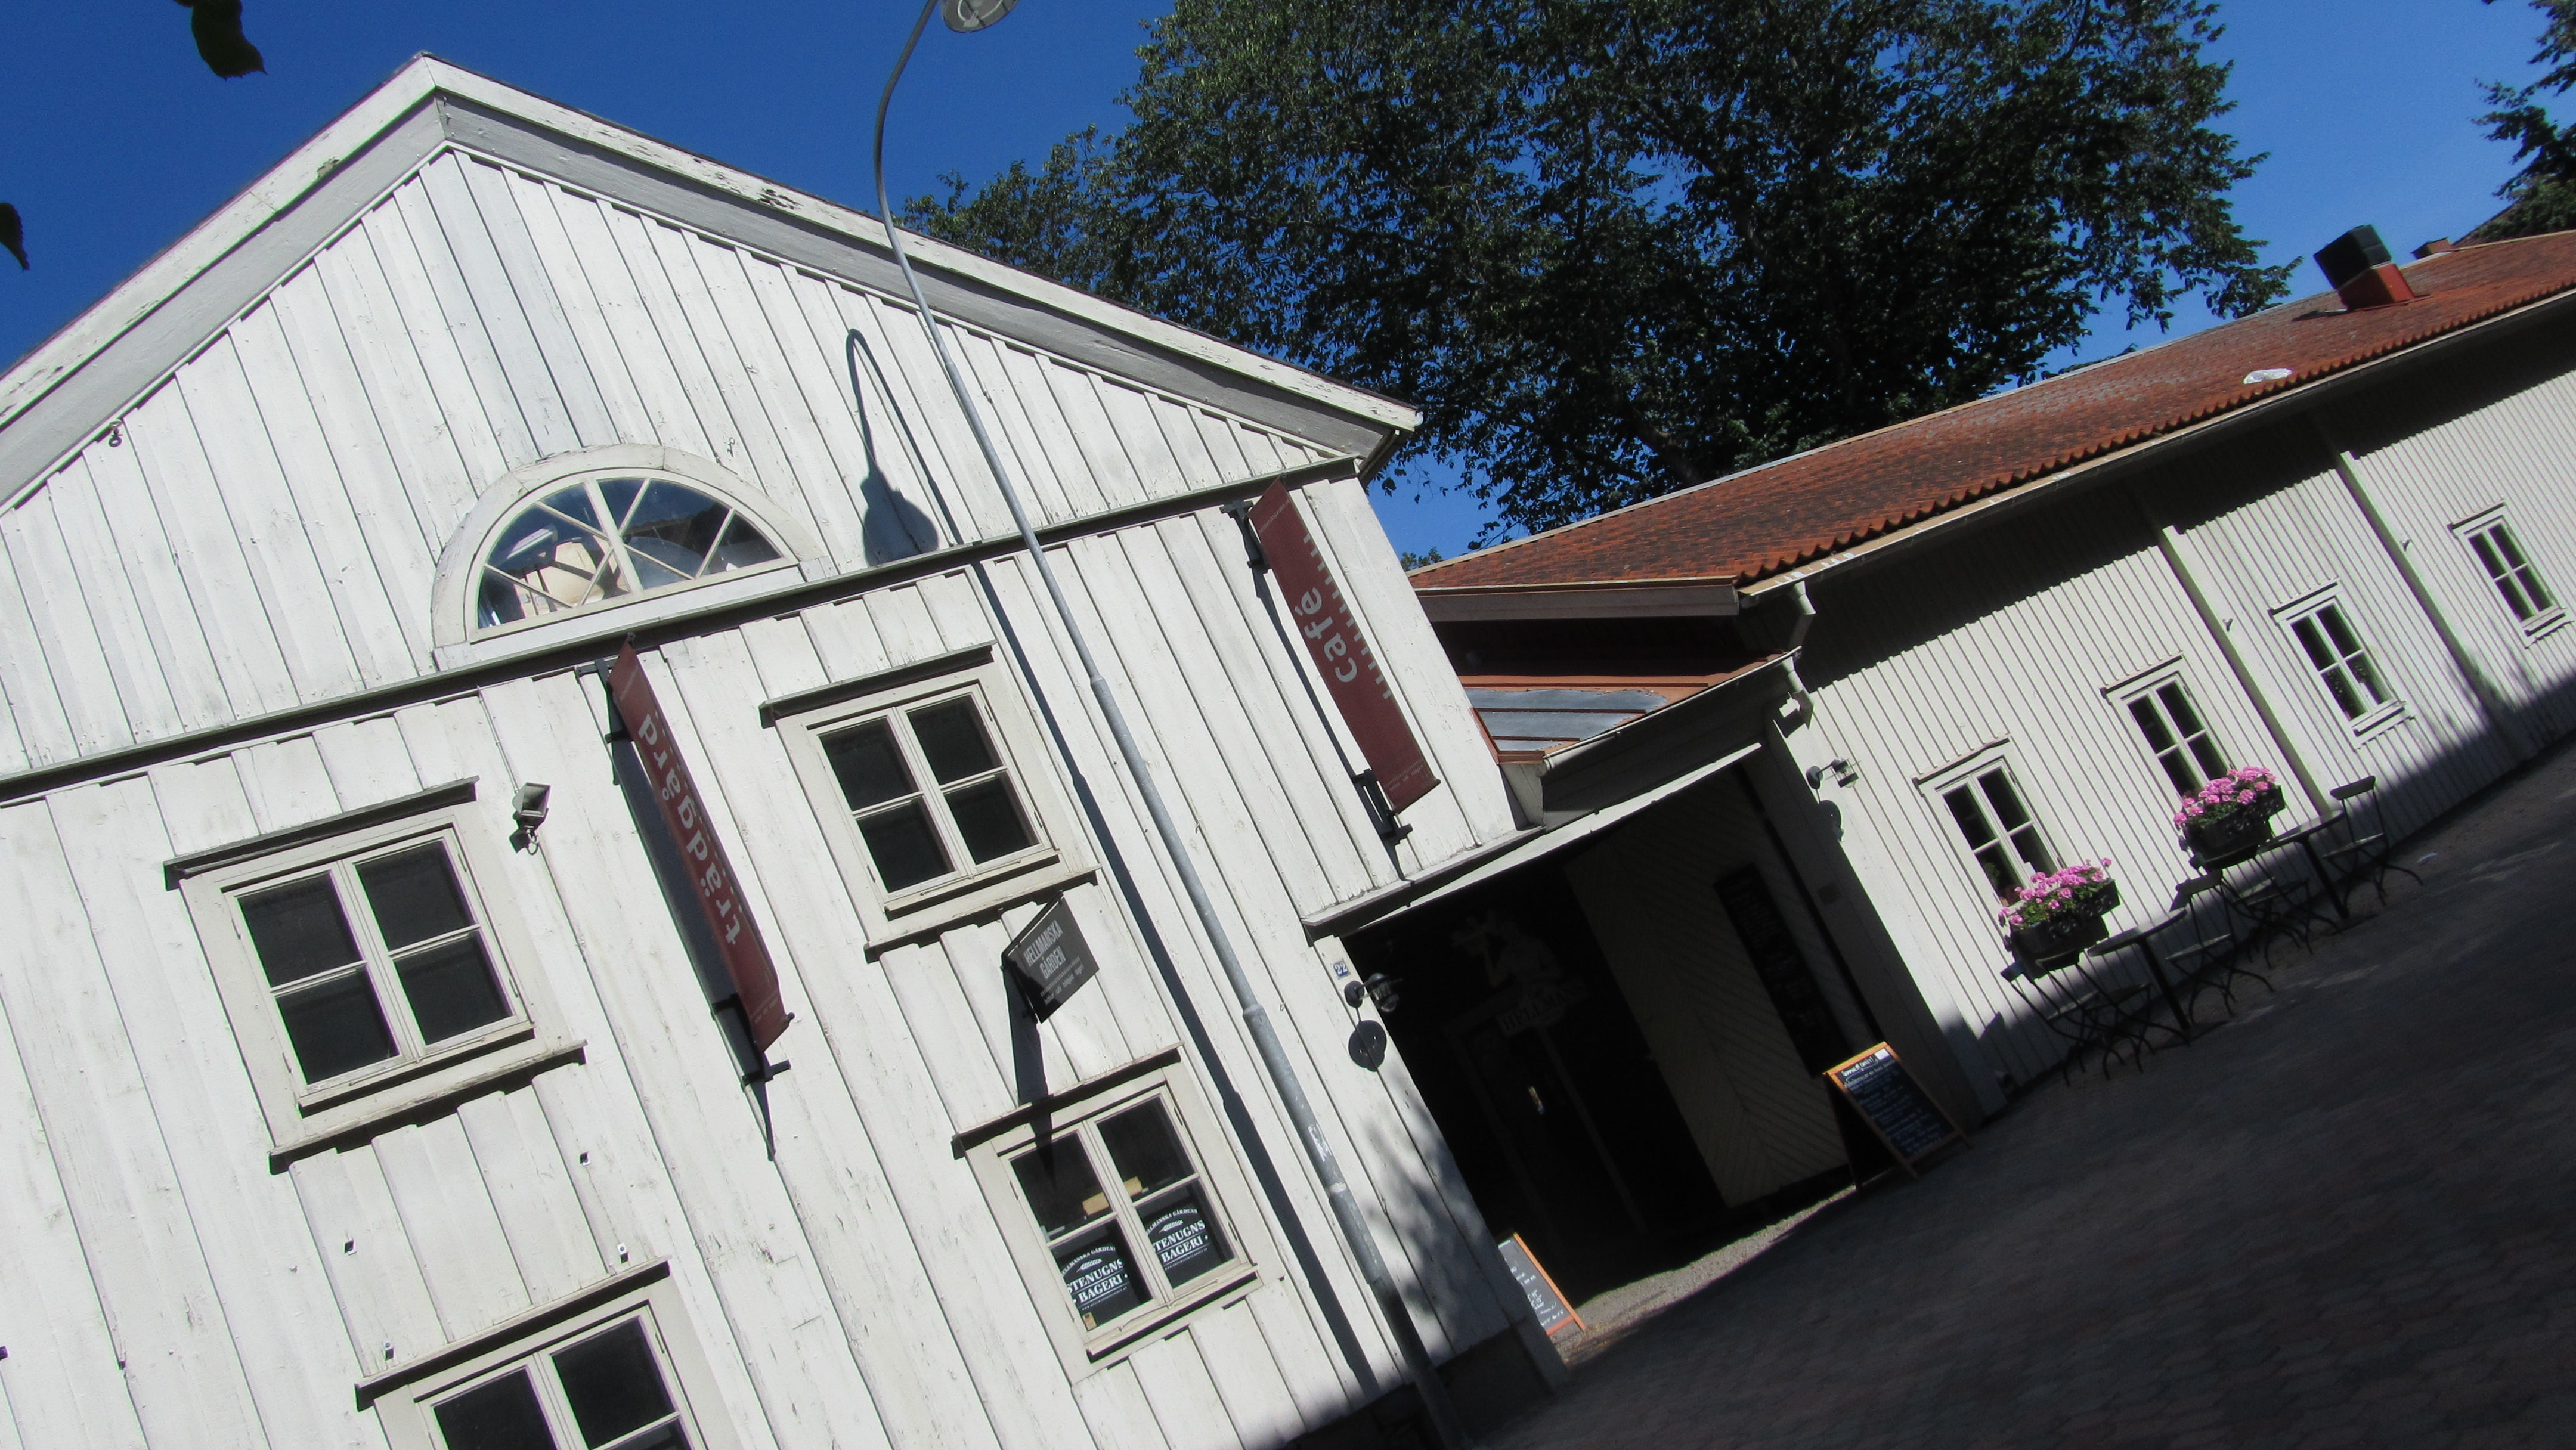 Formerly stables, now a lovely cafe in Nykoping